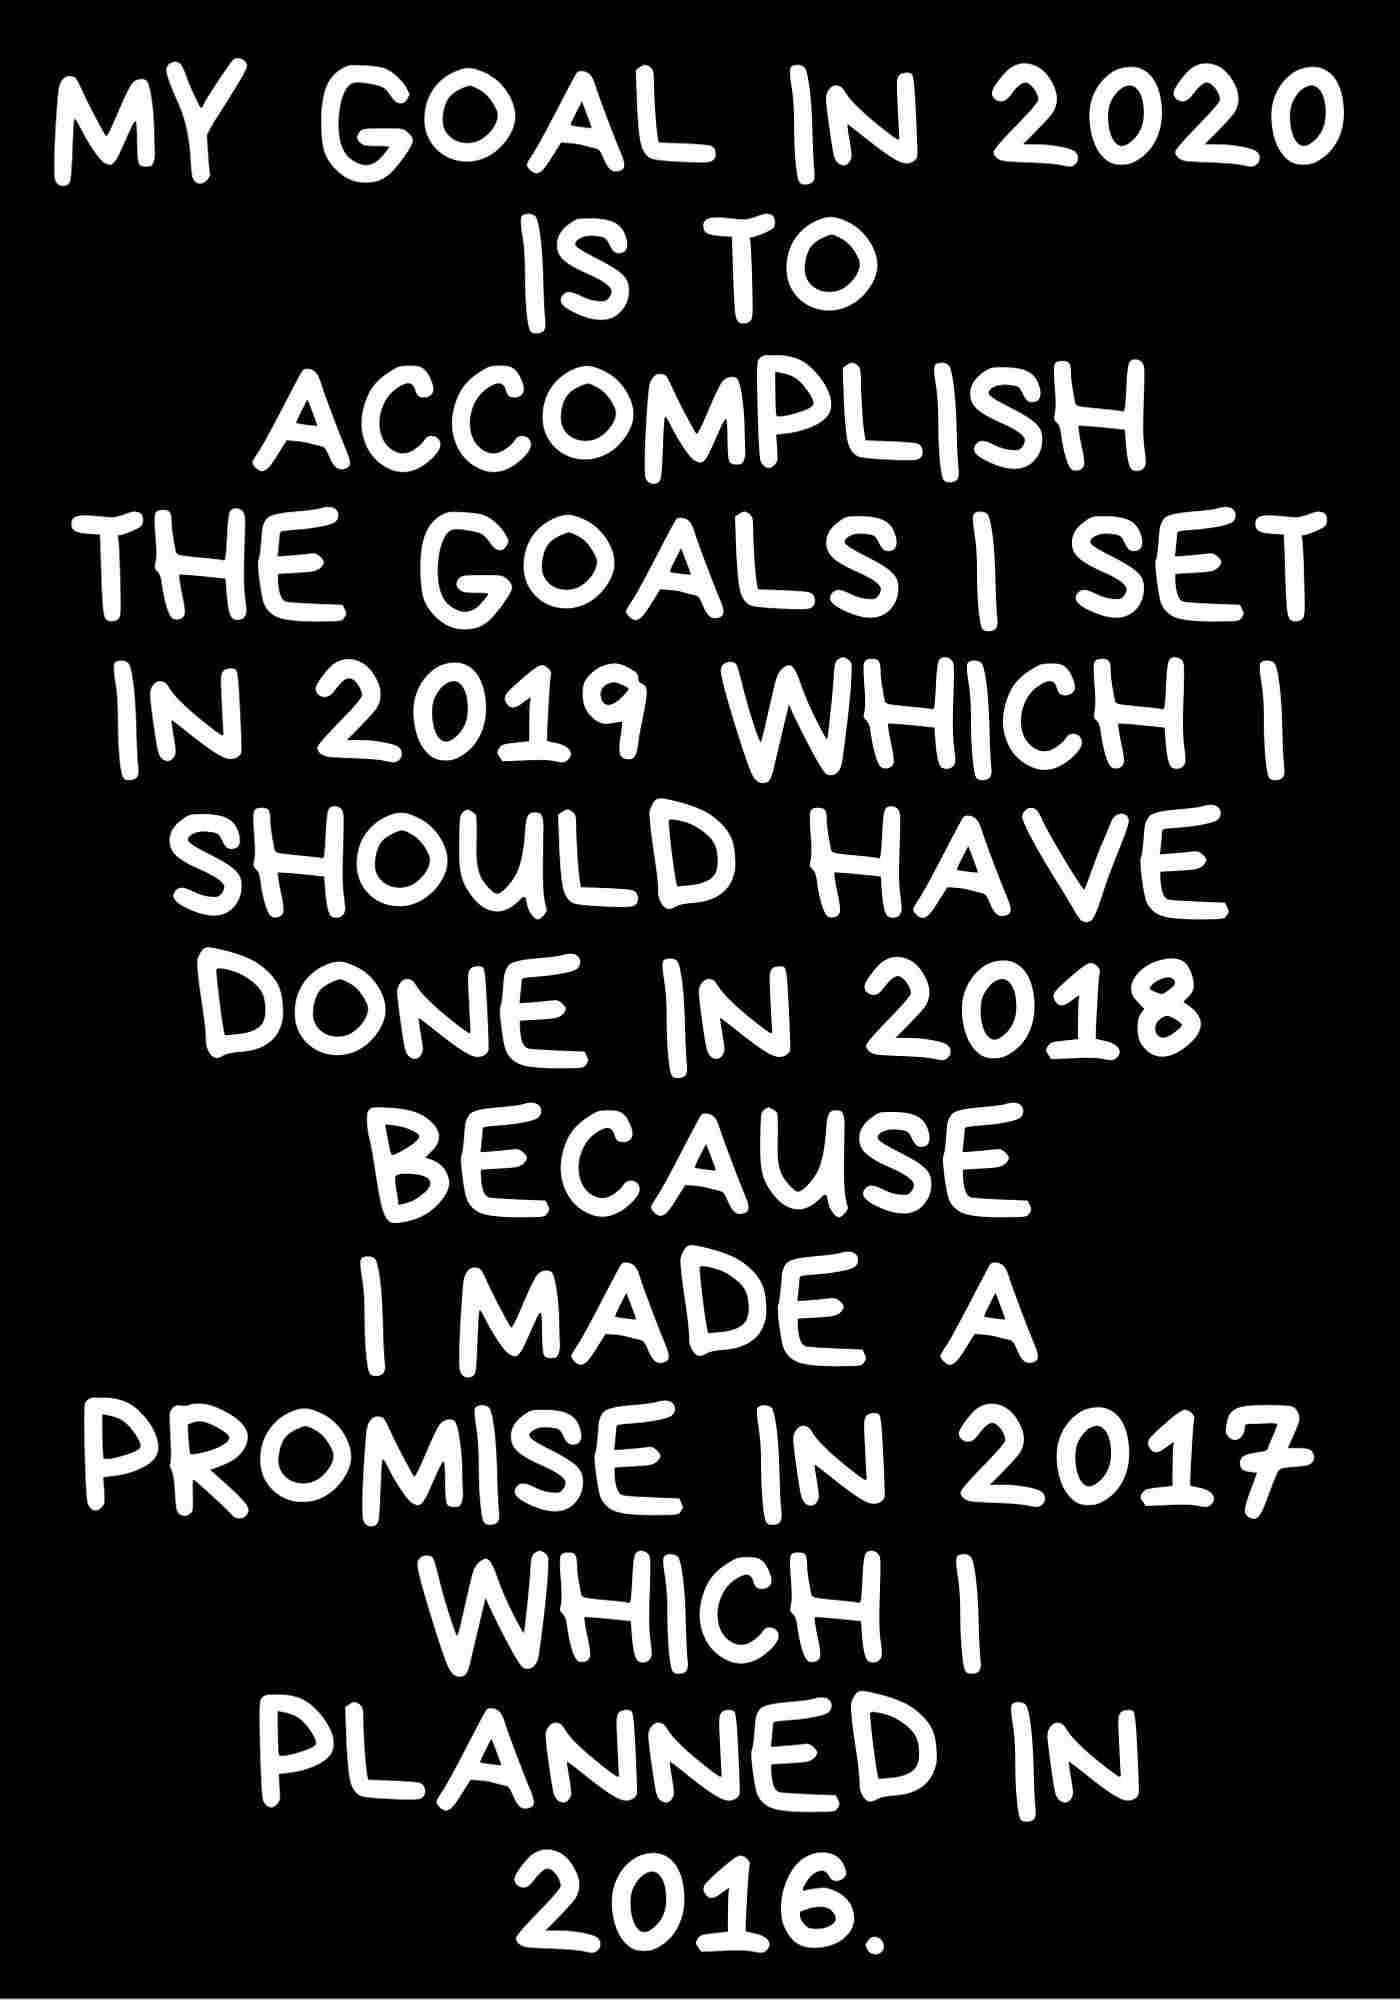 New Year Goals Quotes Funny 2020 Friday Quotes Funny Quotes About New Year Its Friday Quotes